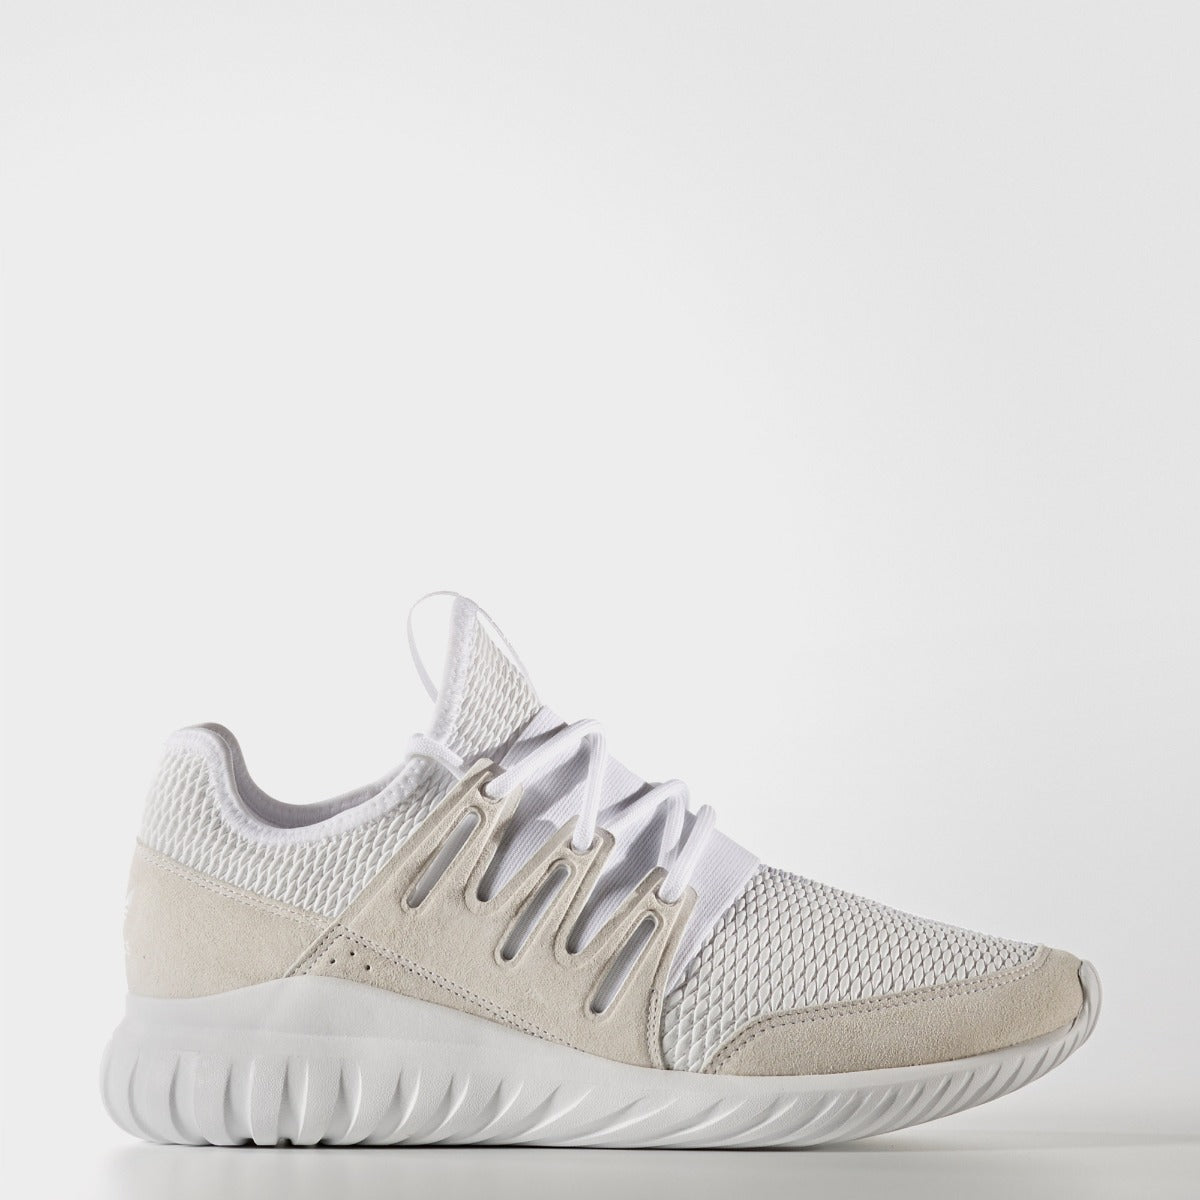 size 40 170dc 69a2f Men s Adidas Originals Tubular Radial Light Gray